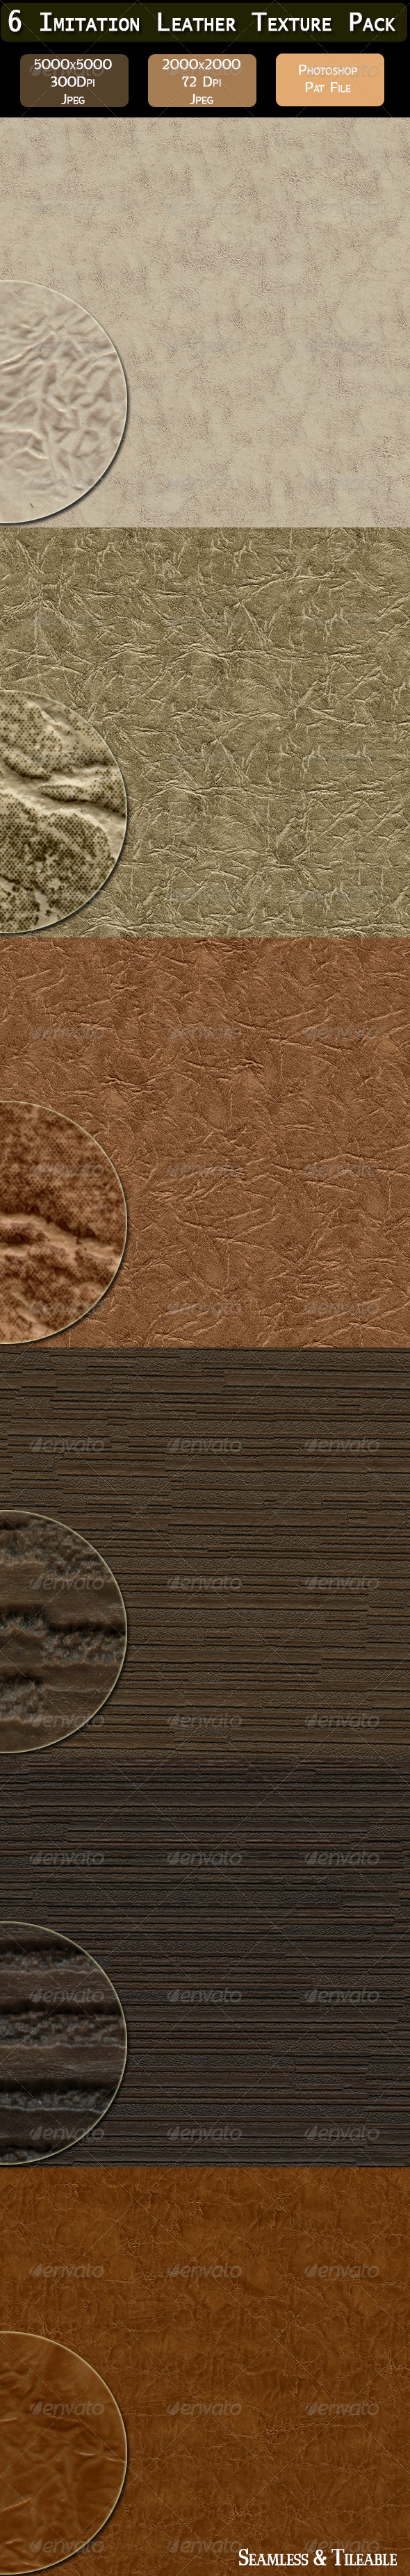 6 Imitation Leather Texture Pack - Fabric Textures